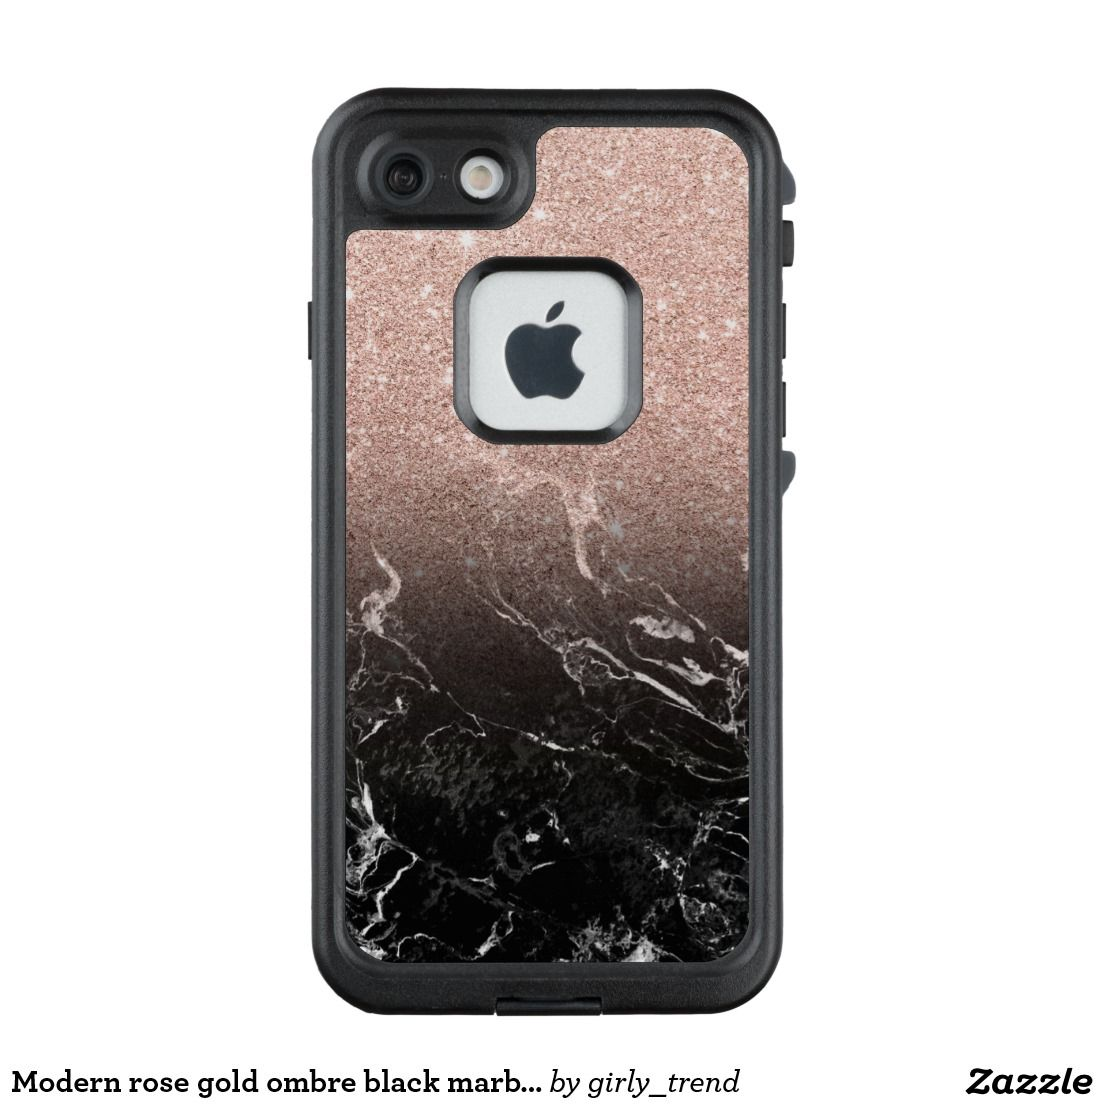 Modern rose gold ombre black marble color block LifeProof® FRĒ® iPhone 7  case 08ce47acac